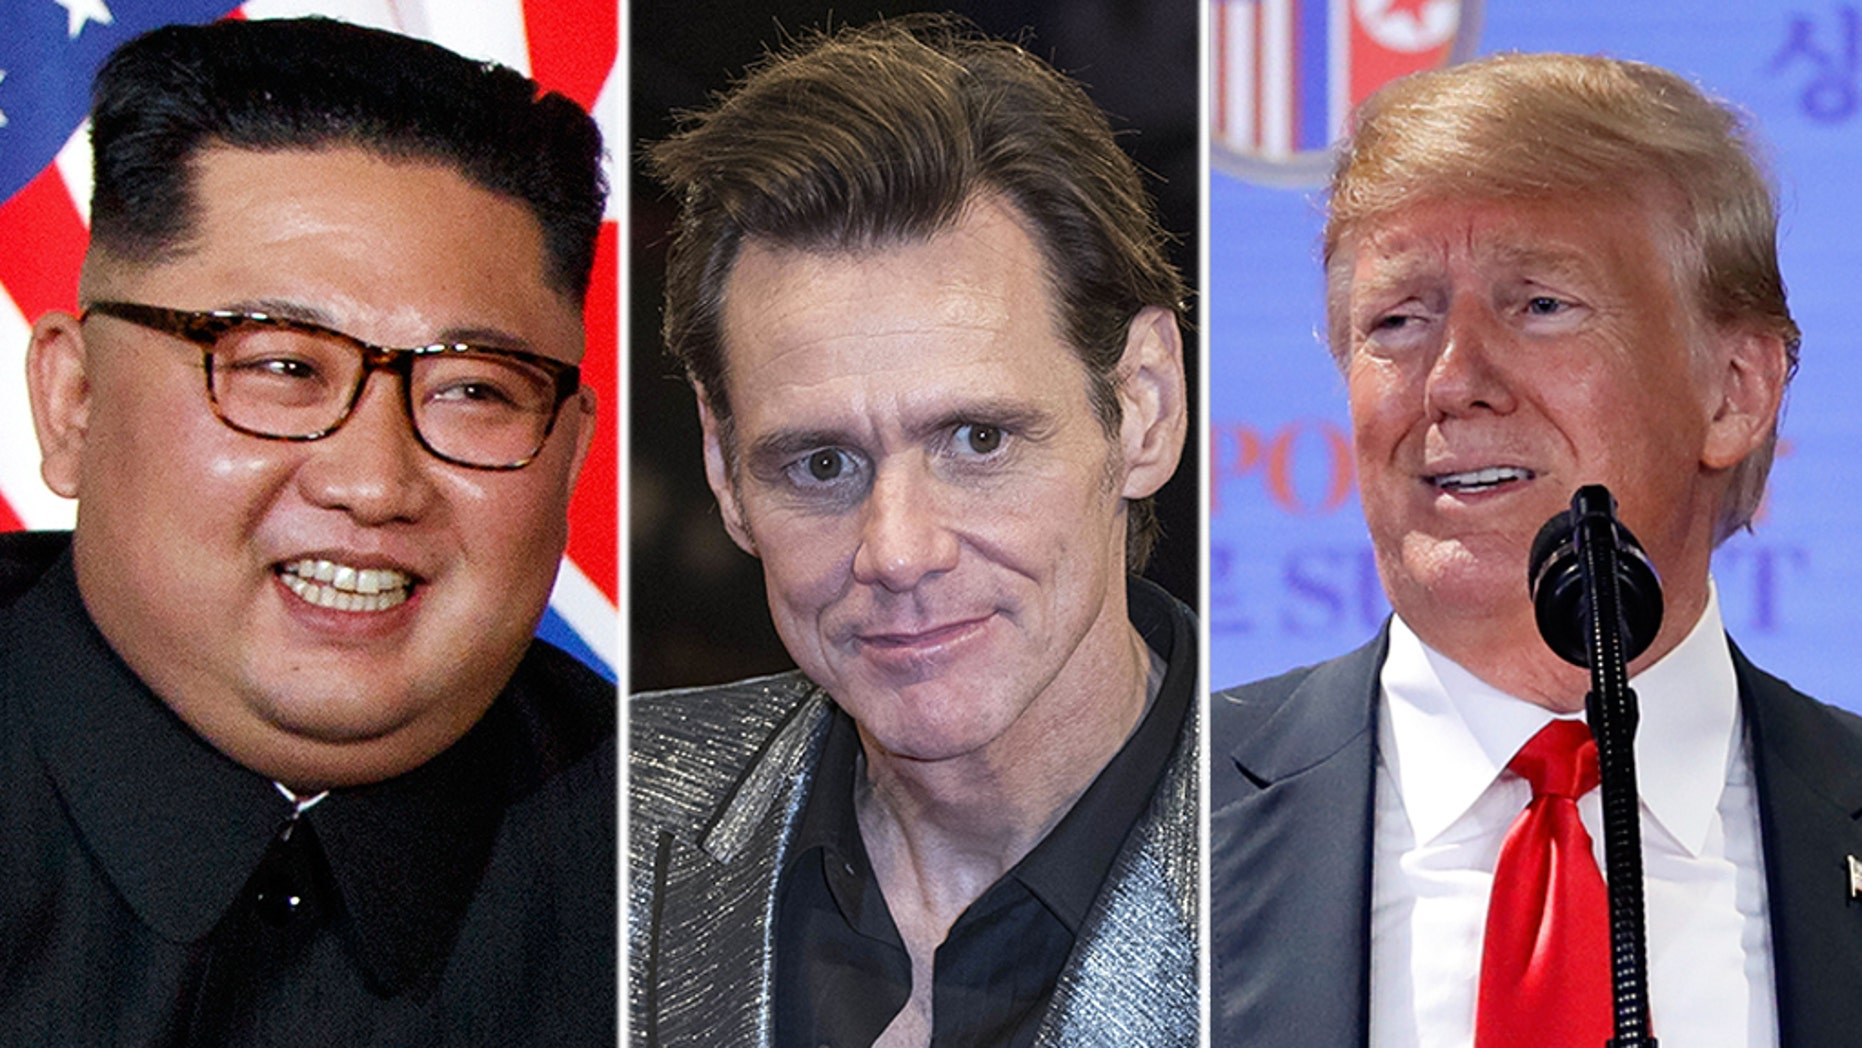 Jim Carrey, middle, posted a new caricature early Tuesday, seemingly of North Korean leader Kim Jong Un, left, and President Trump, right.